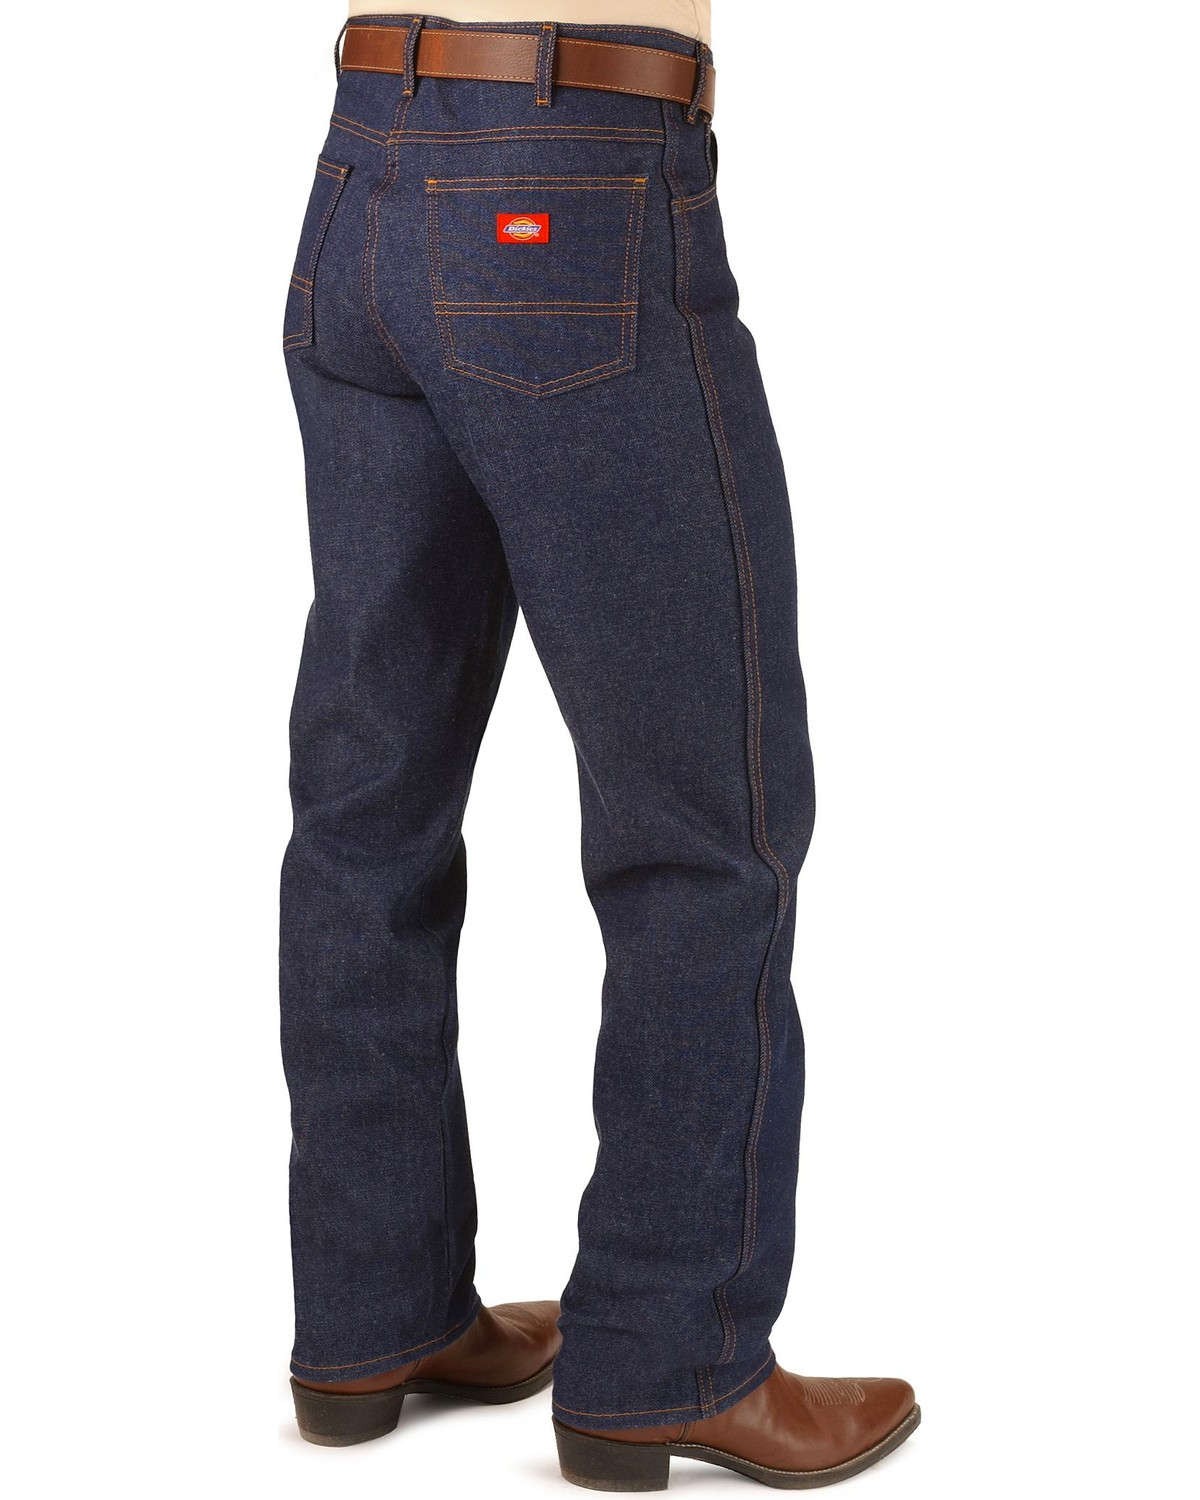 Dickies Men's Clothing Dickies offers a huge selection of mens clothing and apparel. Shop now and find men's workwear that will stand up to the daily wear and tear from any job. % Satisfaction Guaranteed.